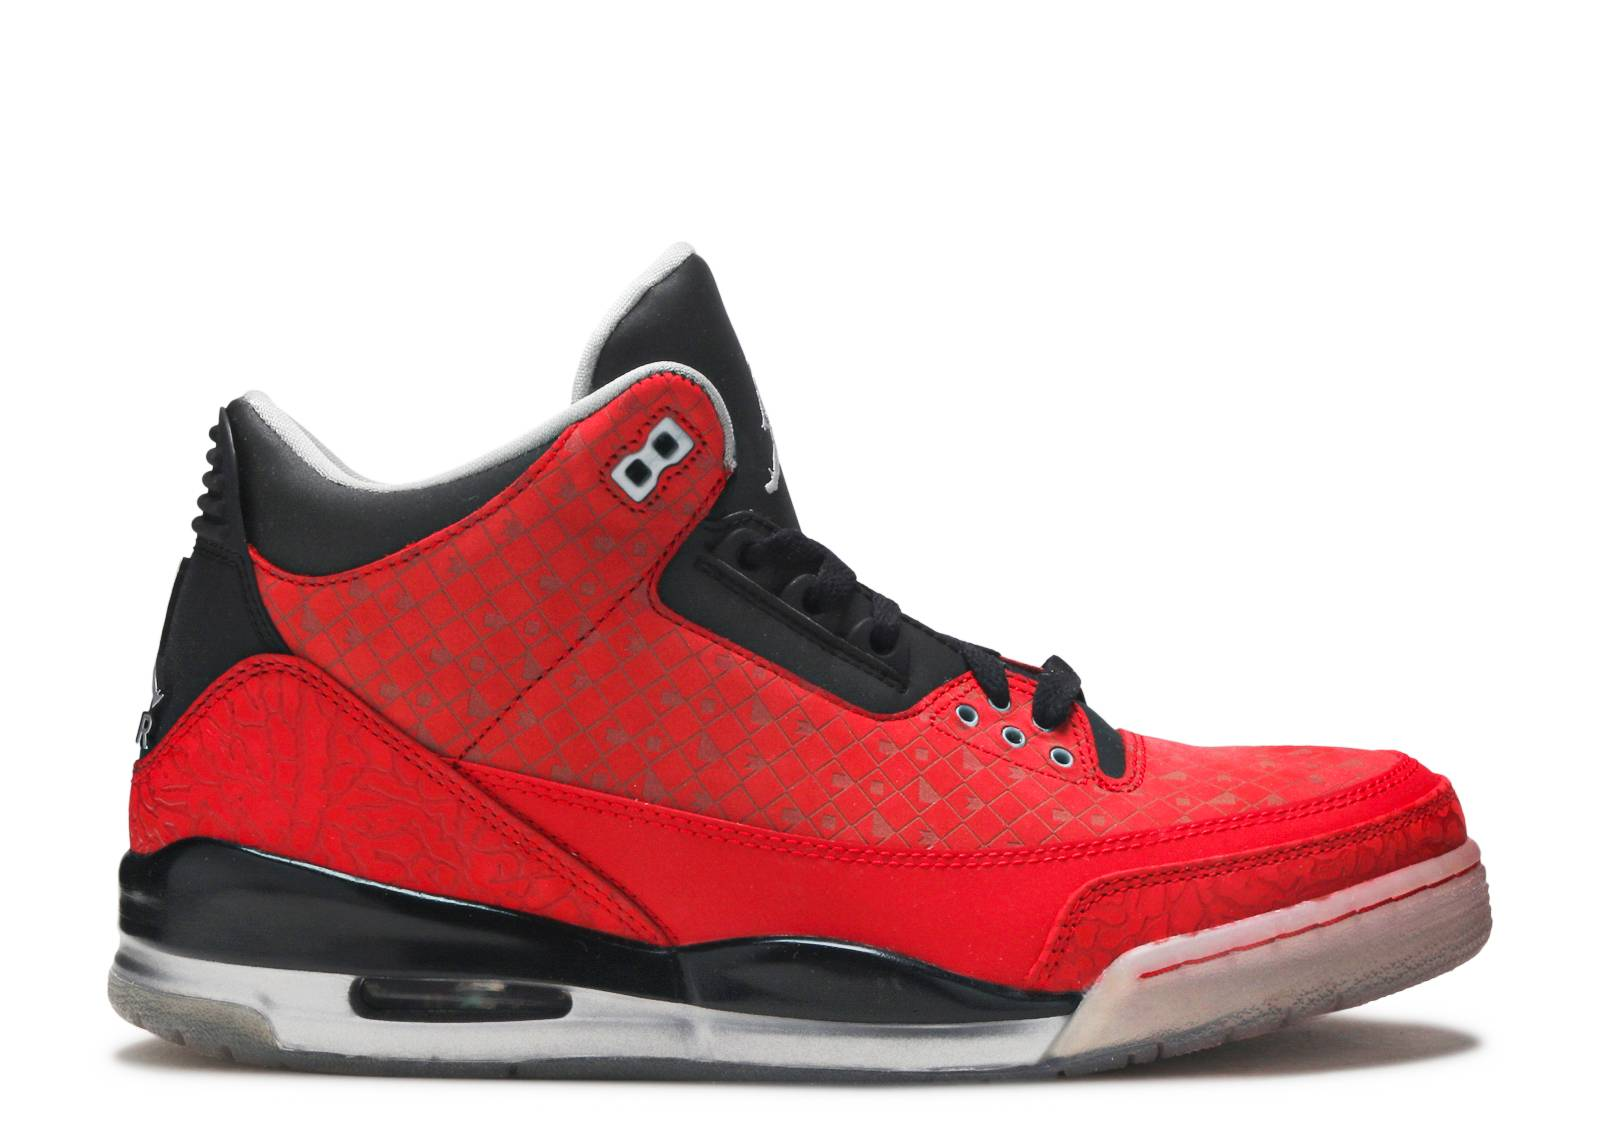 air jordan 3 doernbecher retail price